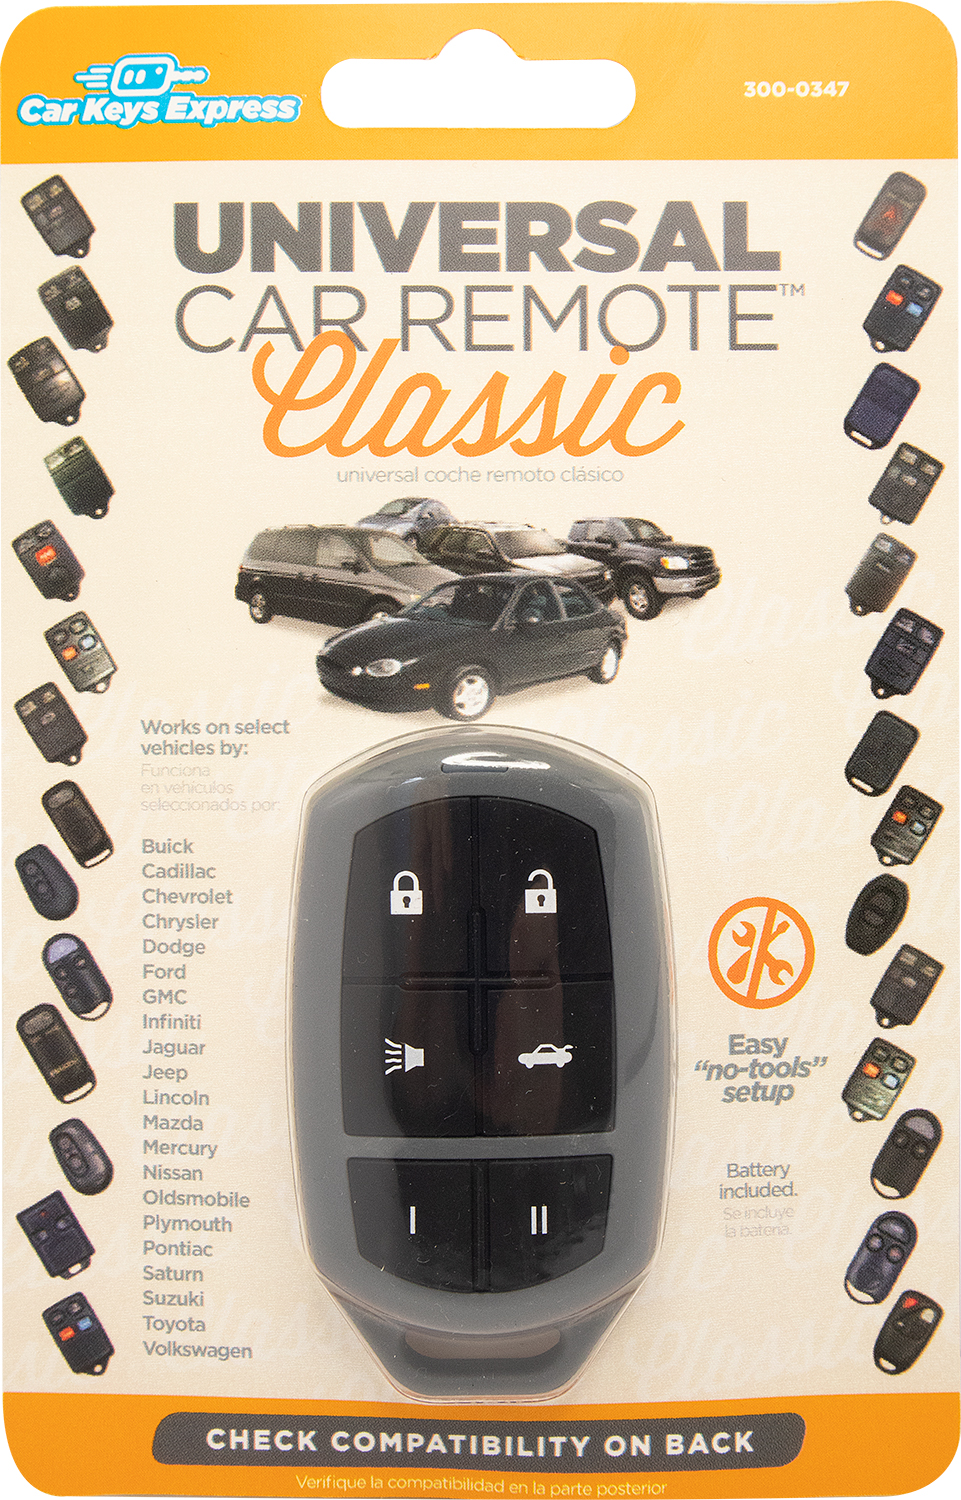 The Universal Car Remote Classic